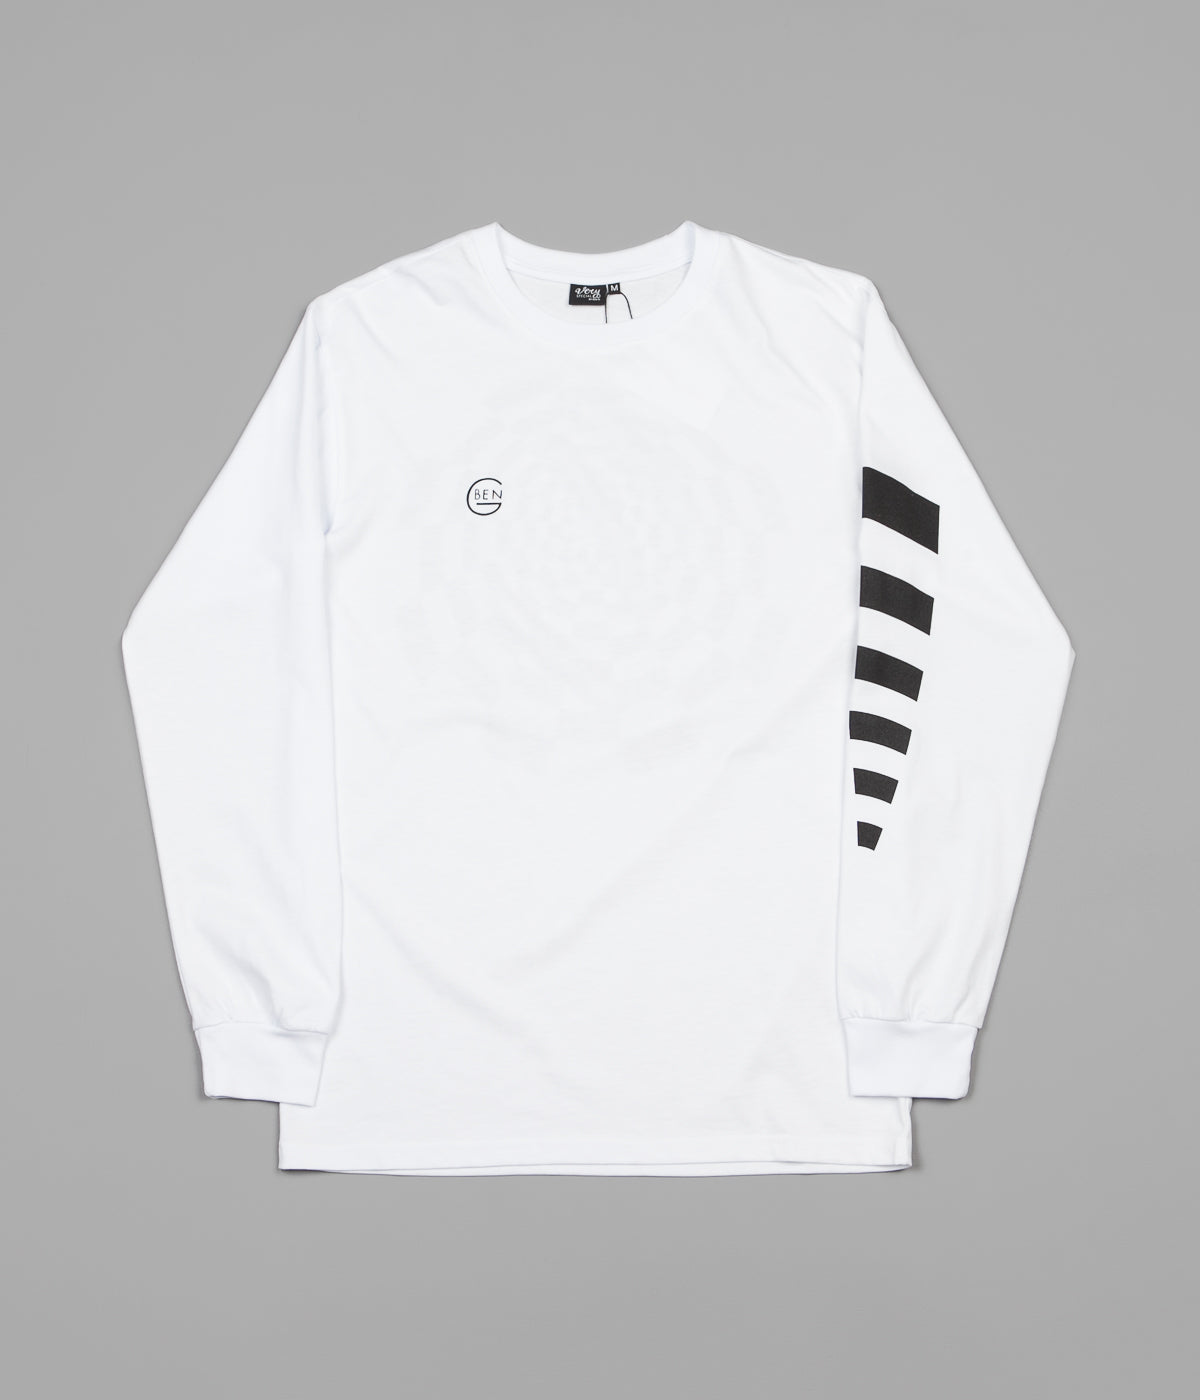 Ben-G Optic Long Sleeve T-Shirt - White